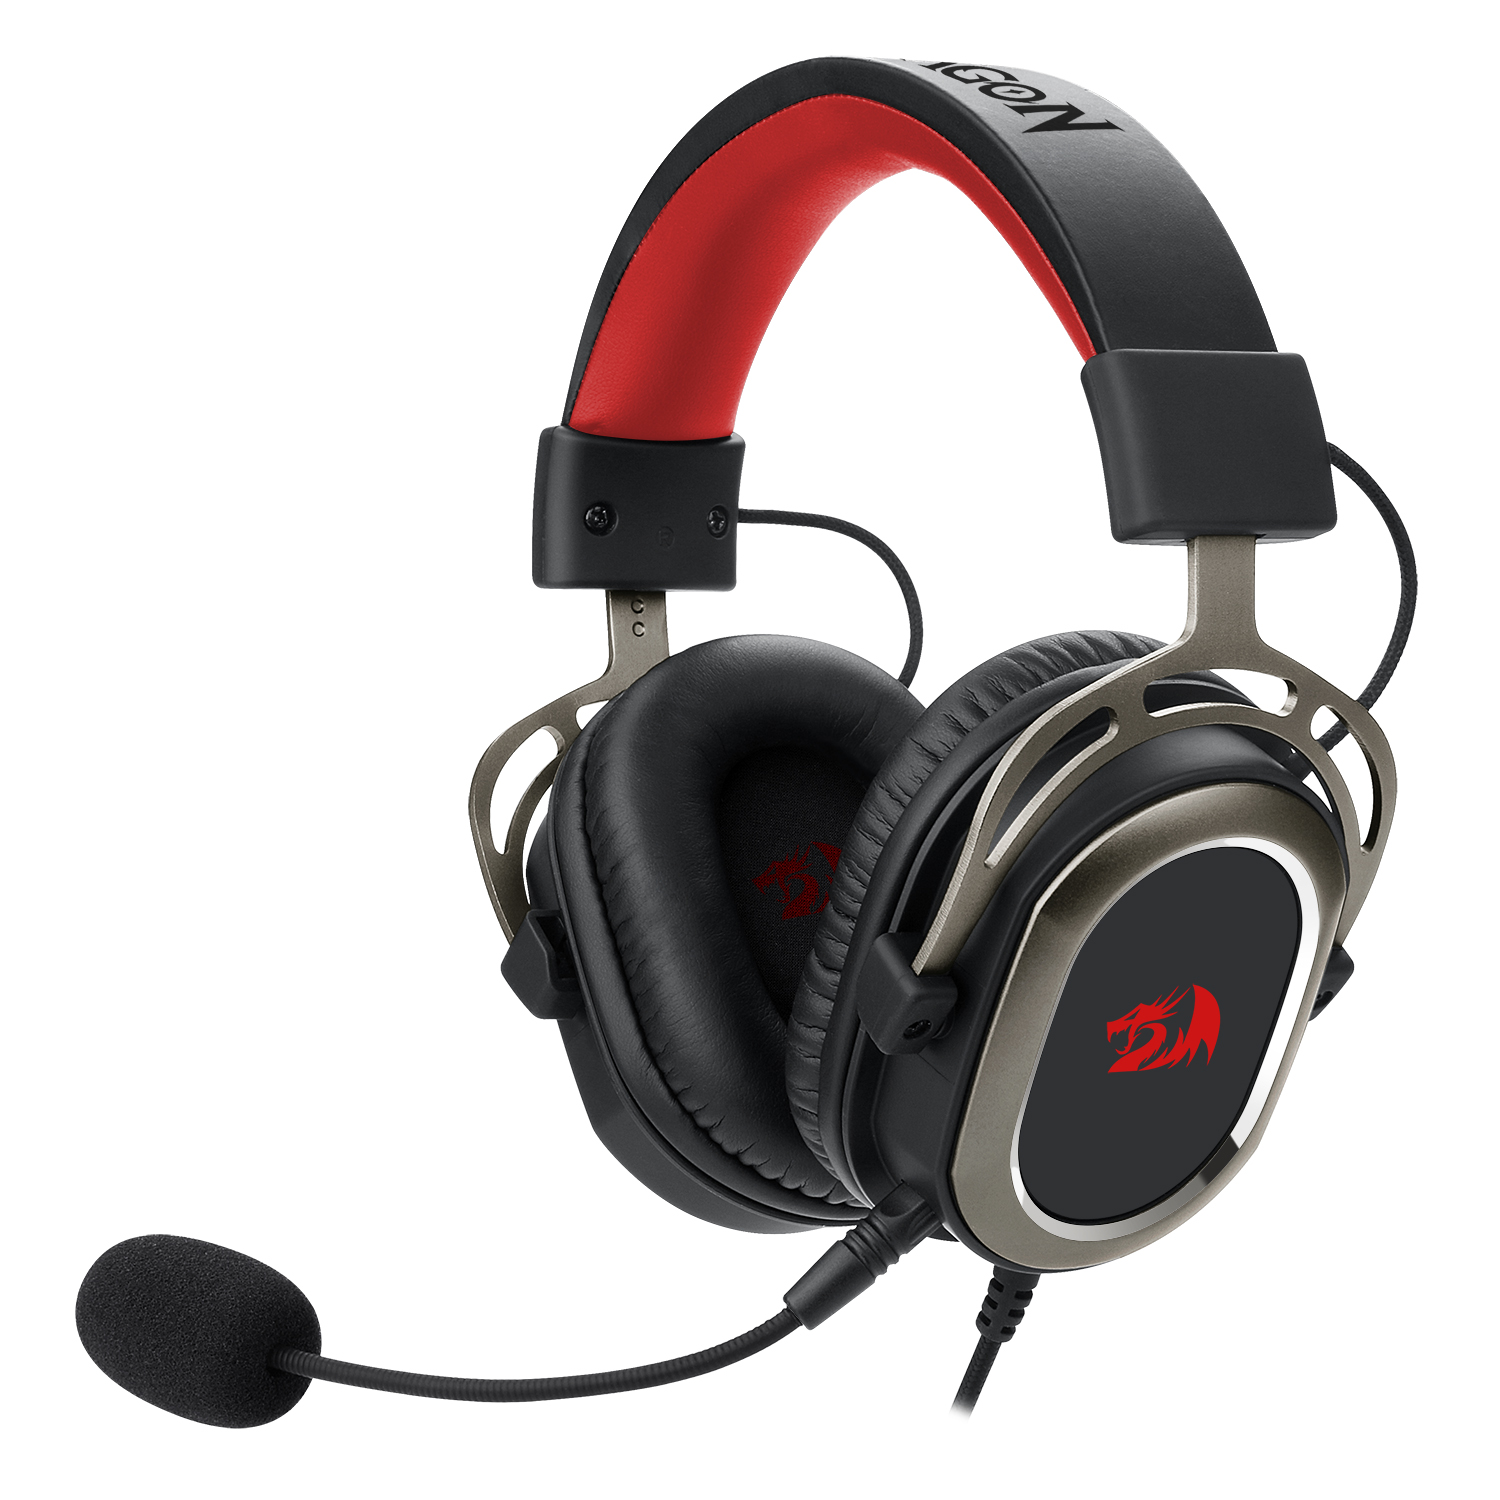 Redragon H710 Helios USB Wired Gaming Headset - 7.1 Surround Sound - Memory Foam Ear Pads - 50MM Drivers - Detachable Microphone